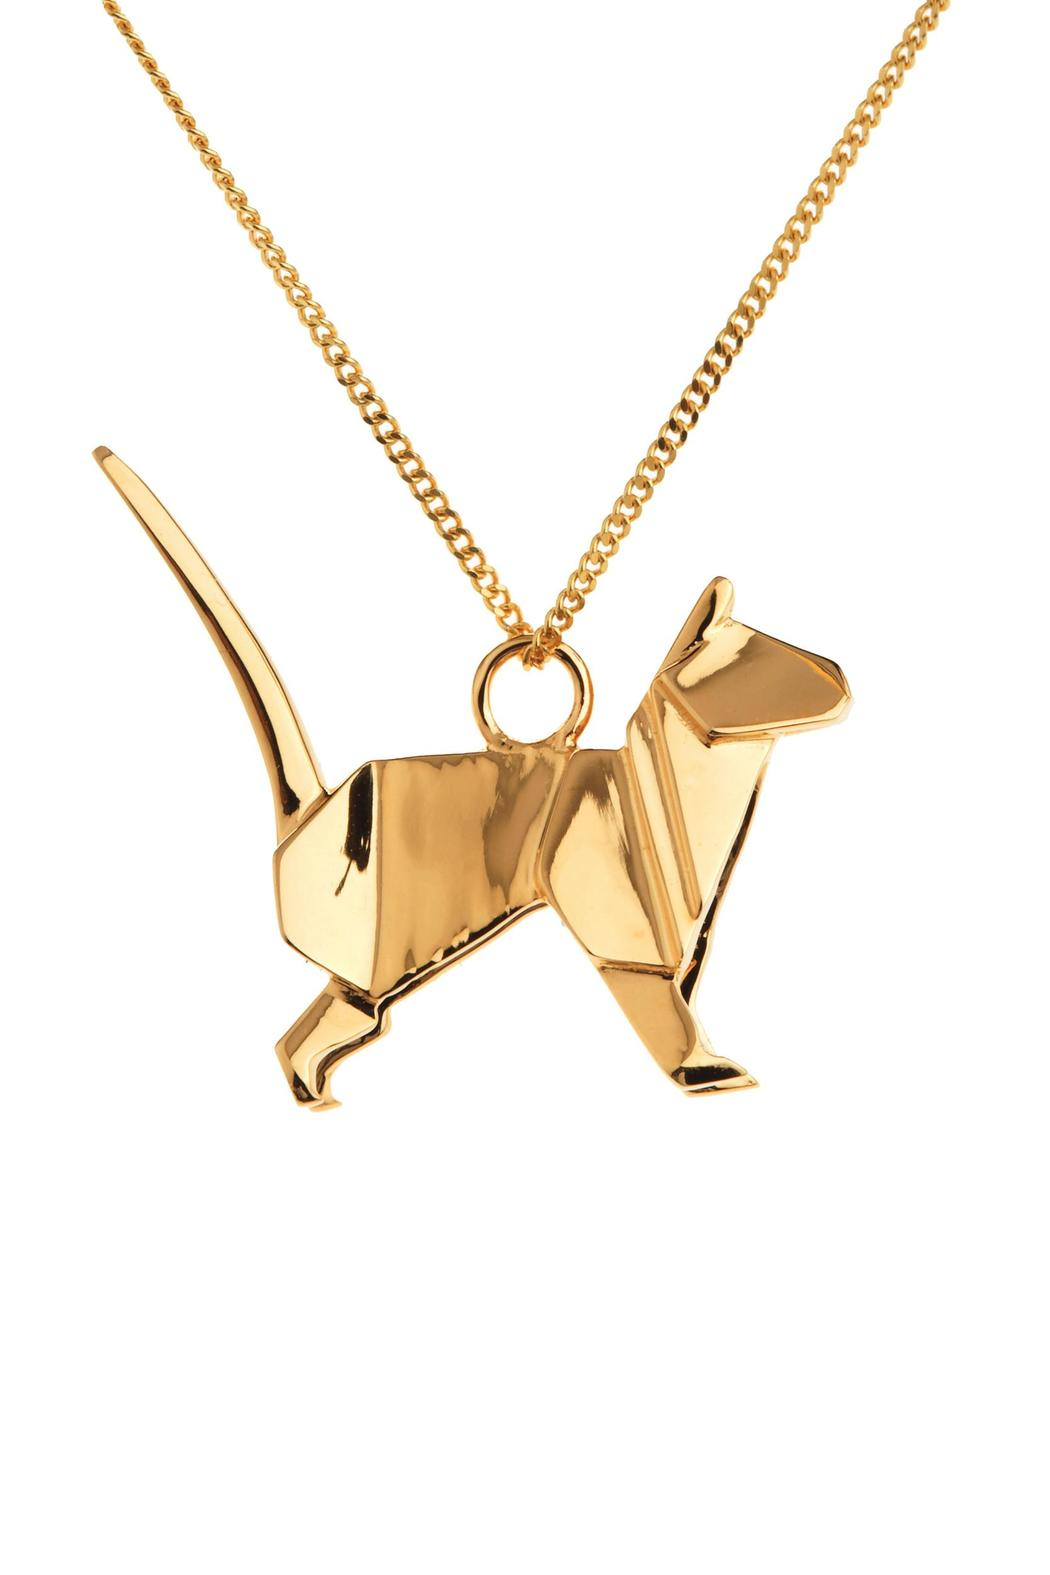 Origami Jewellery Necklace Cat Silver from Paris by ... - photo#5